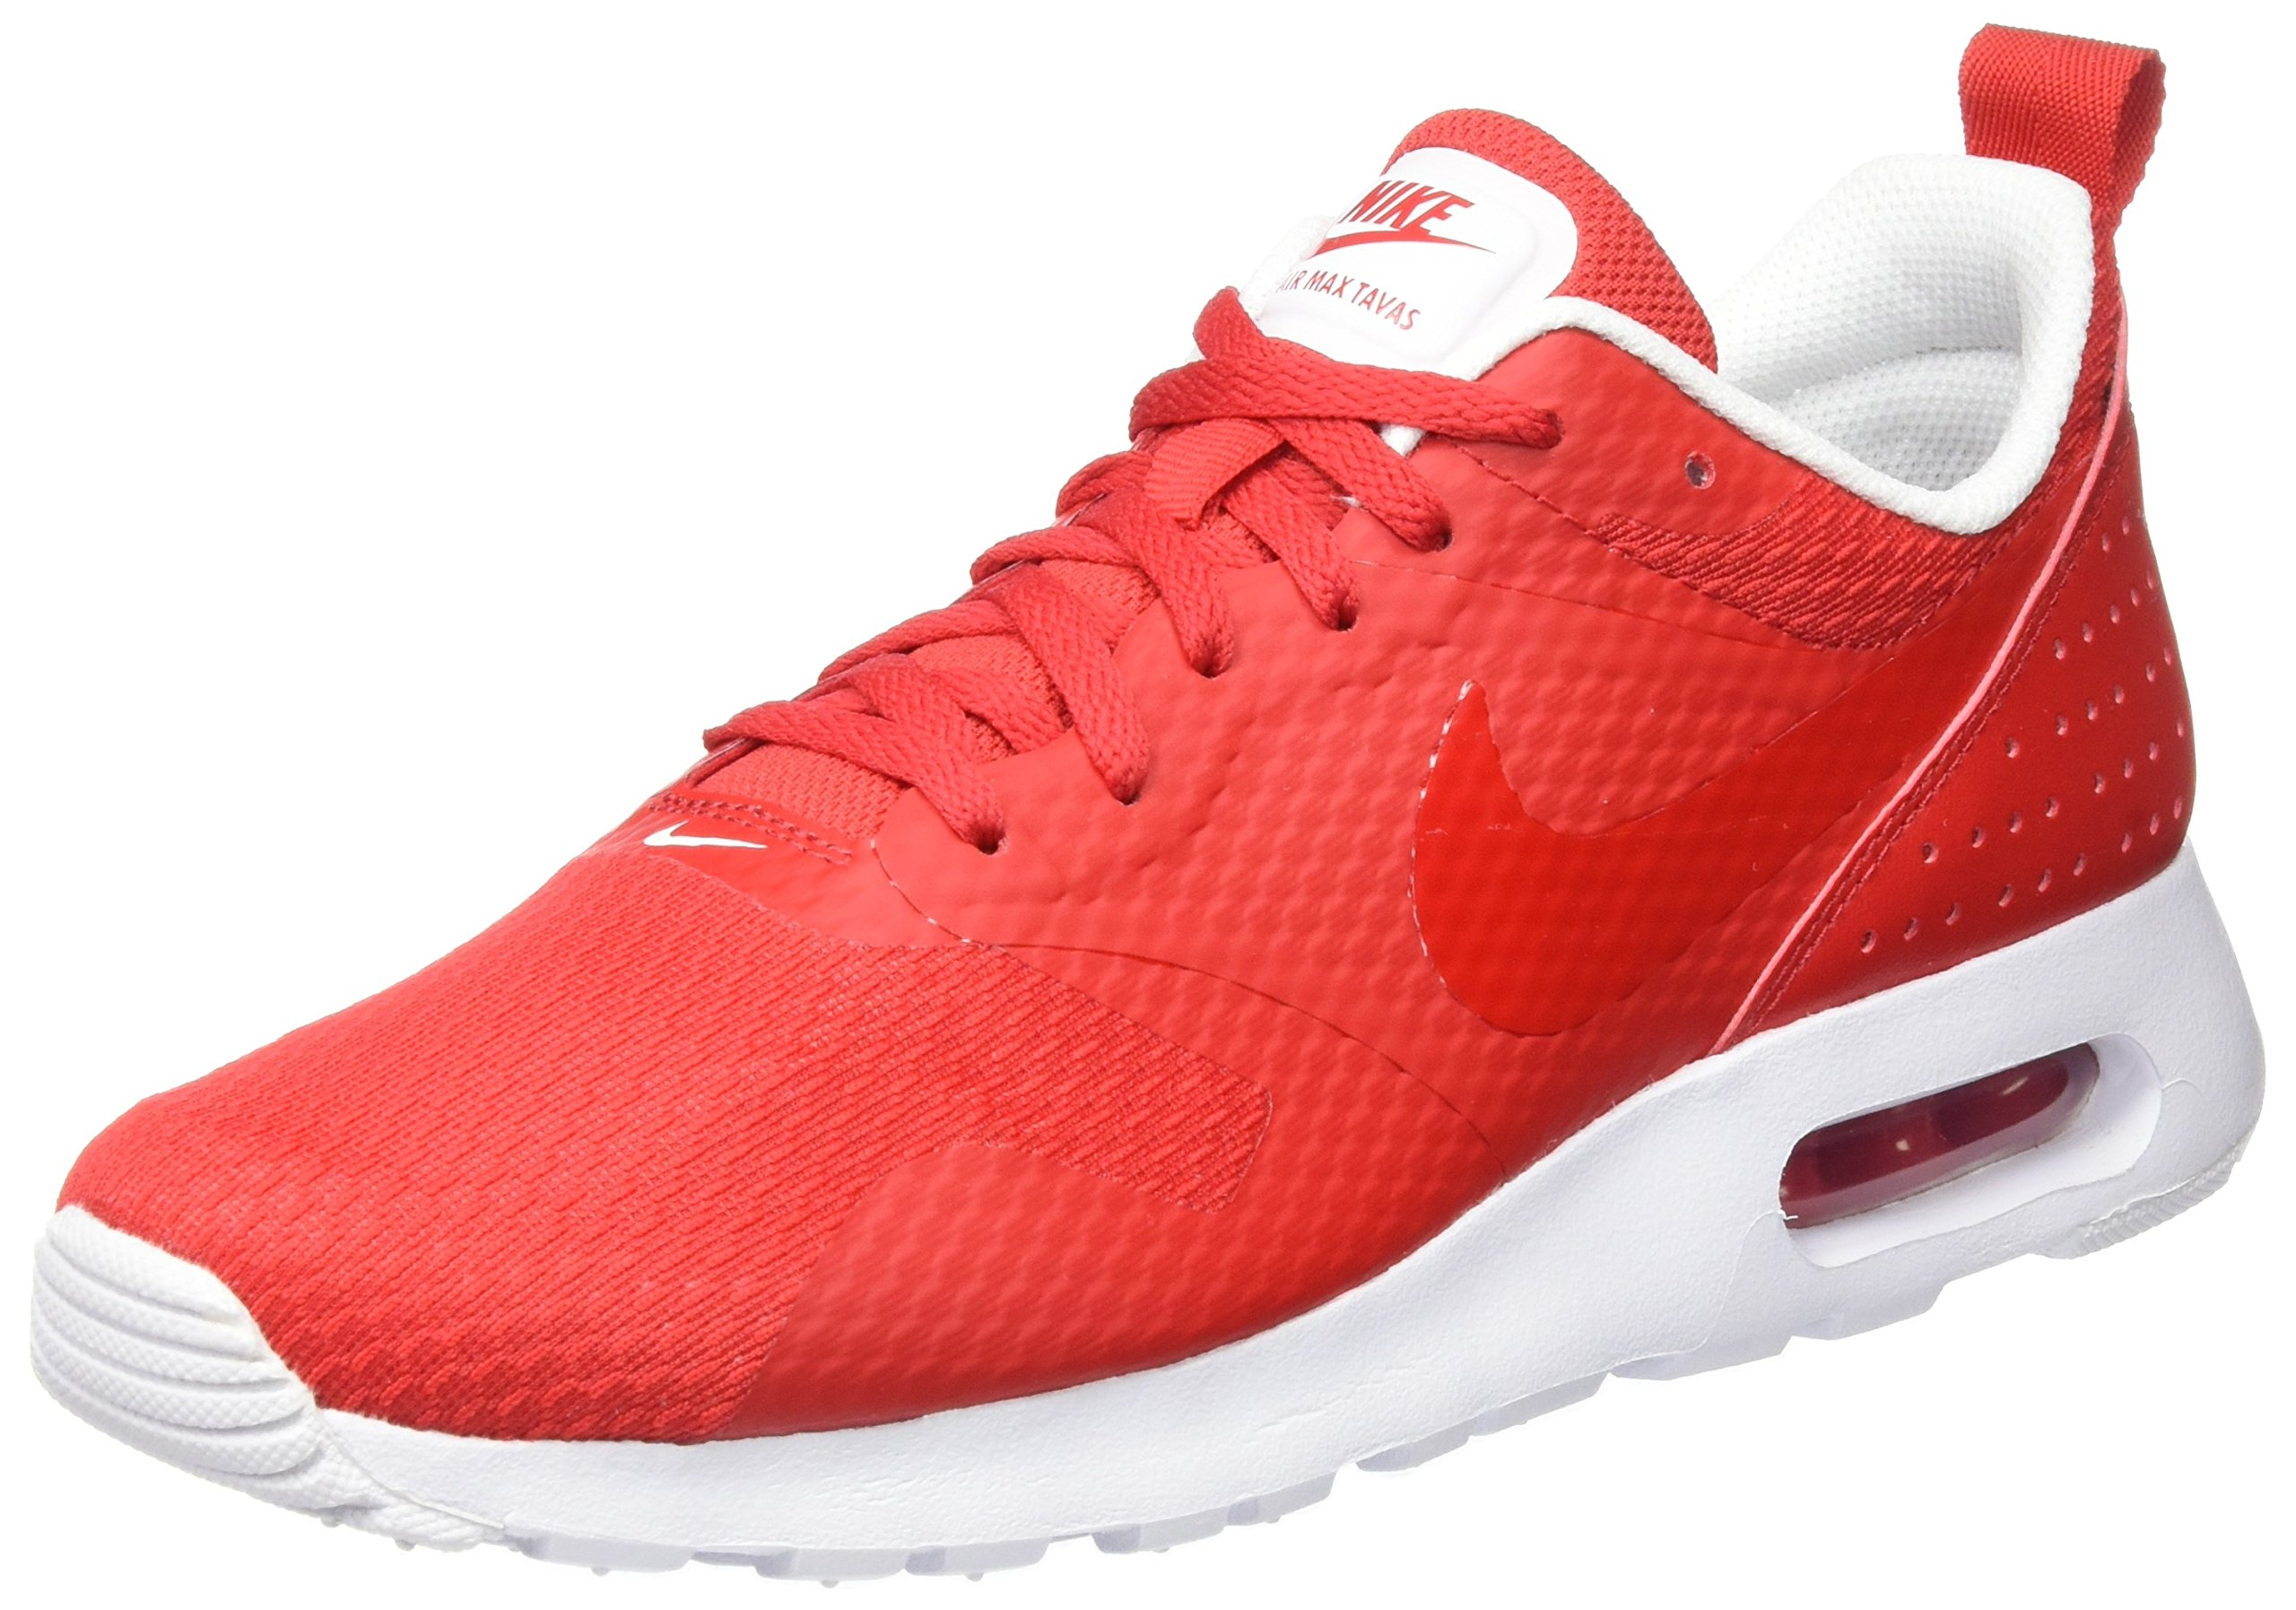 9262ce5d94 Galleon - Nike Air Max Tavas, Men's Low-Top, Red (University Red/University  Red White), 12 UK